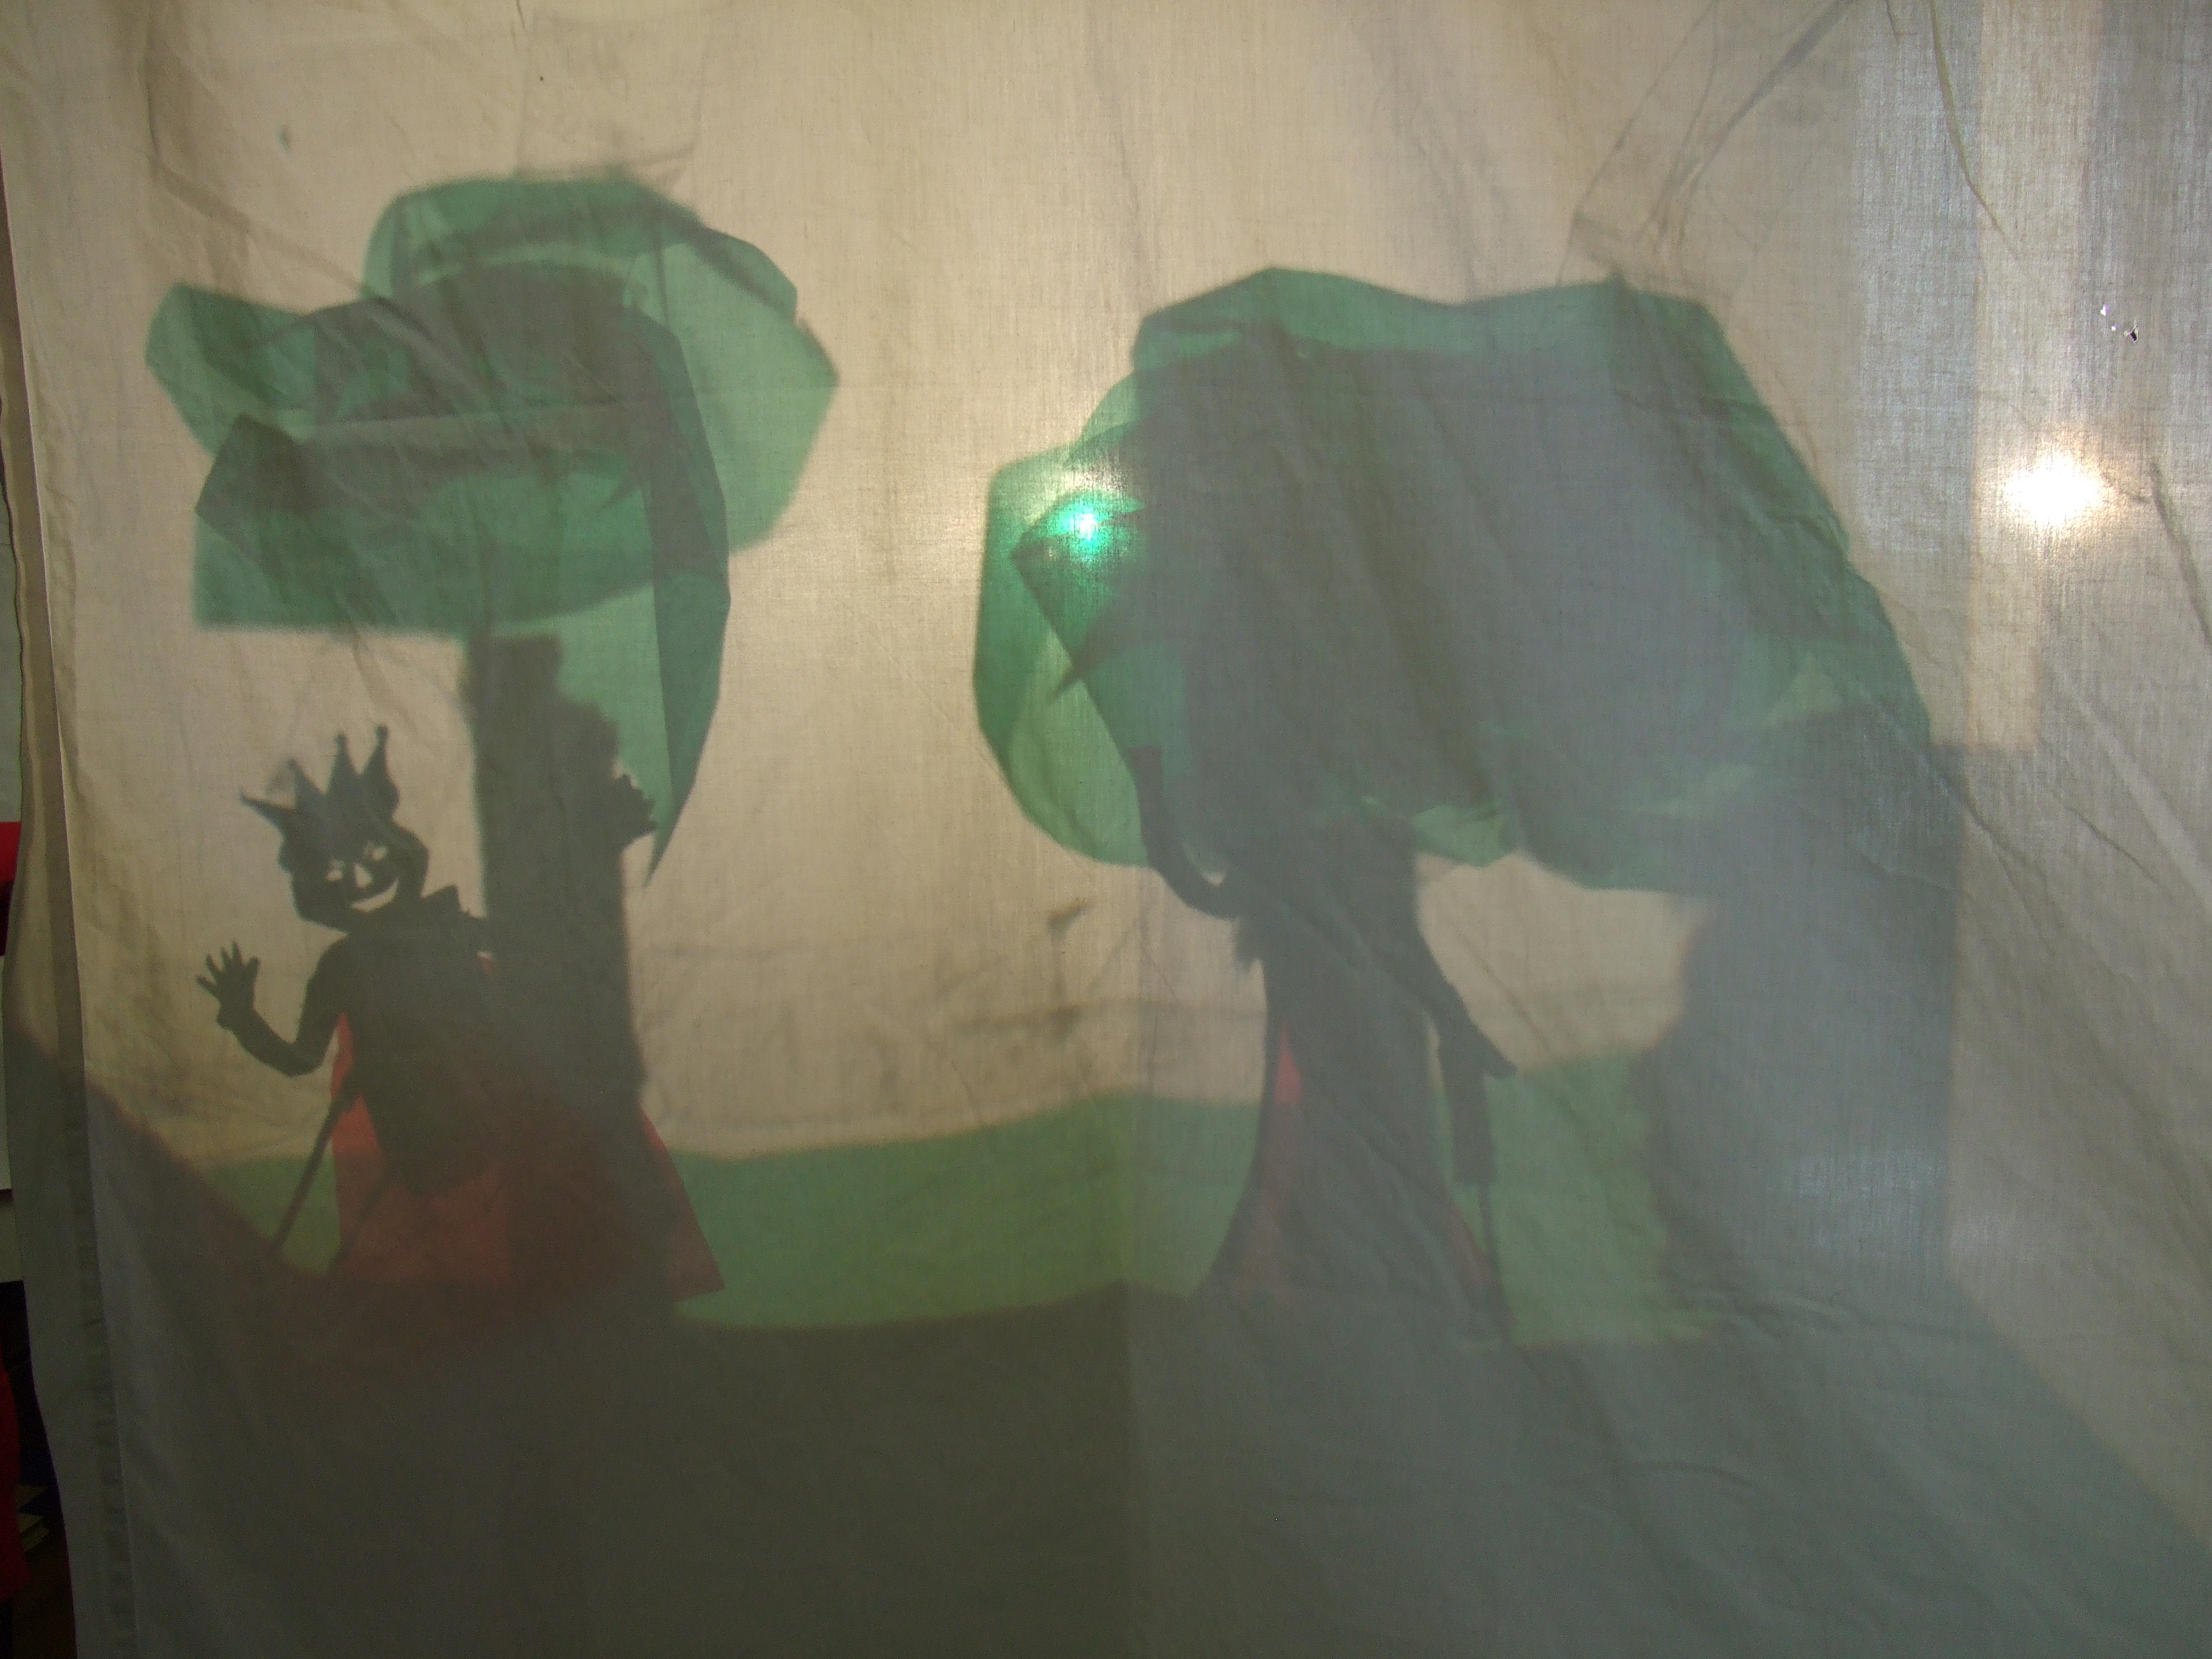 Shadow Puppet set on overhead projector from Dublin City Council\'s Children\'s Art In Libraries Programme, Drumcondra.